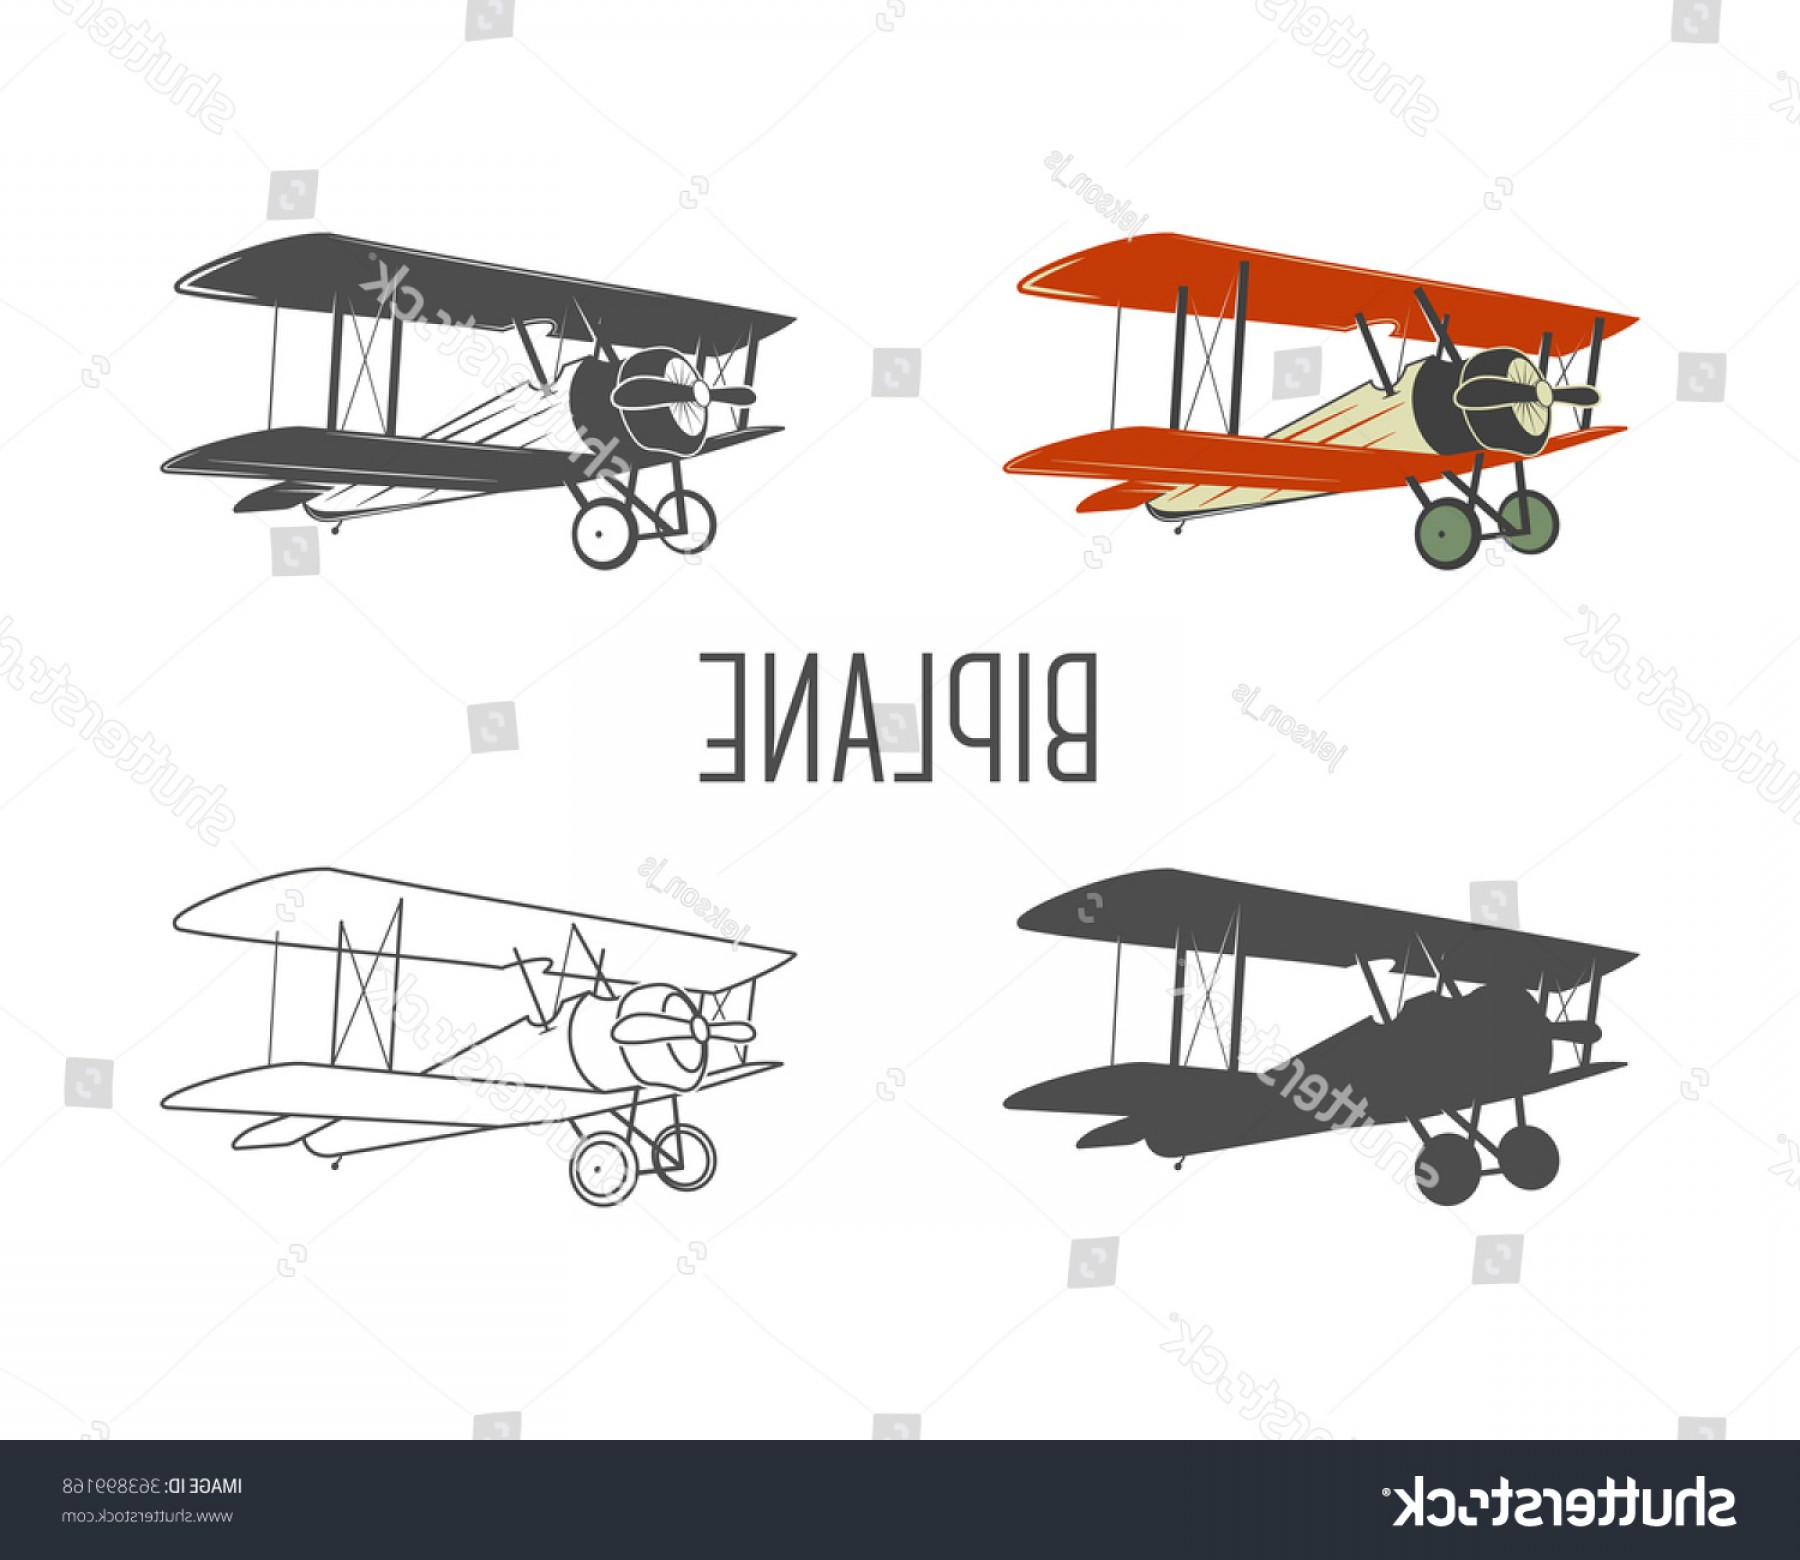 Old School Airplane Fighter Silhouette Vector: Set Vintage Aircraft Design Elements Retro